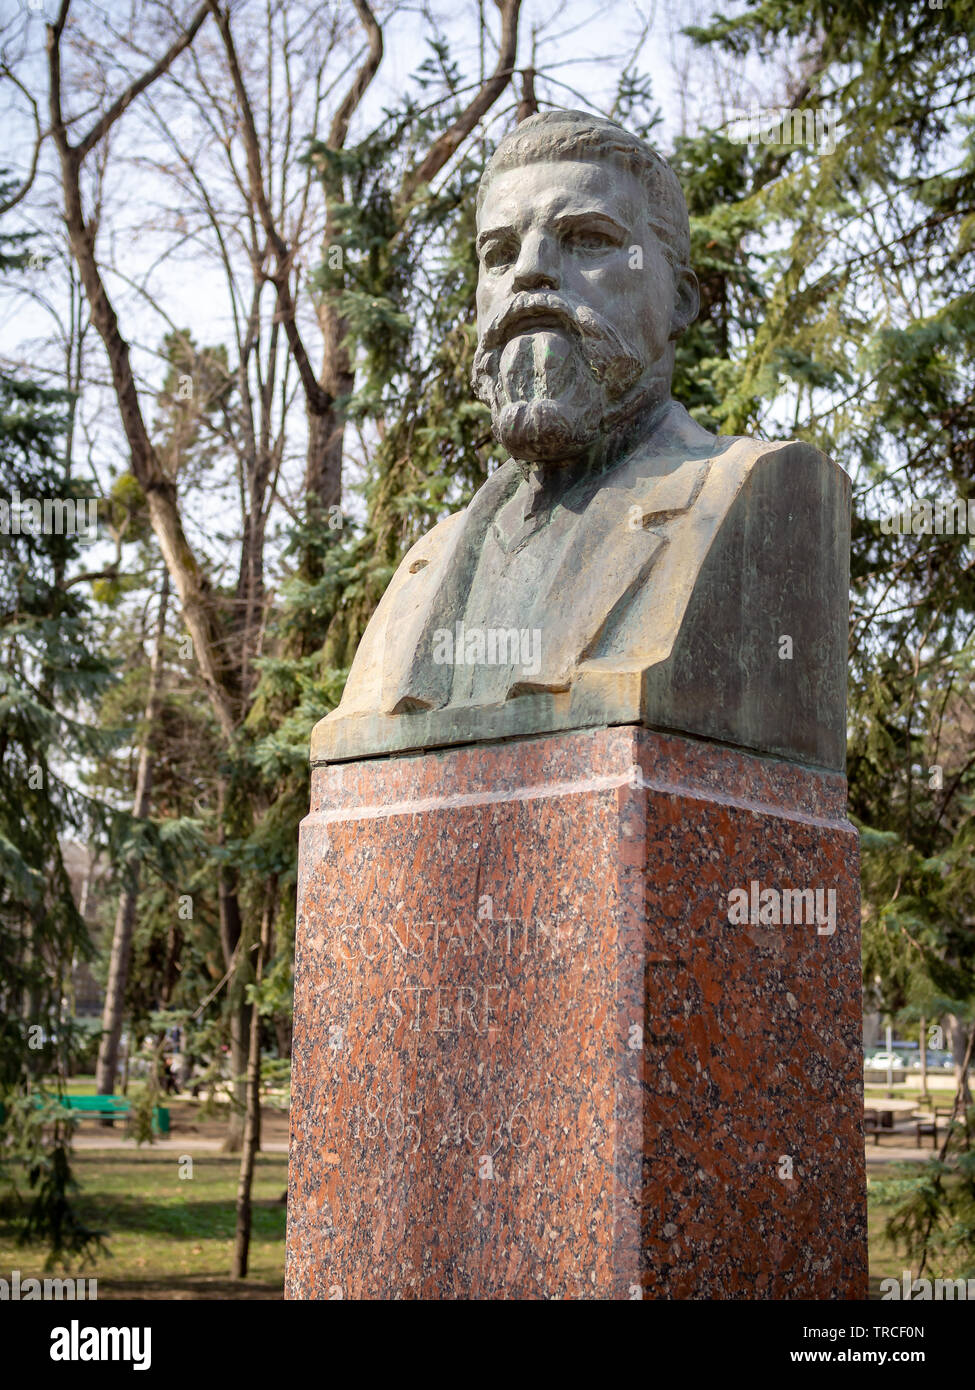 CHISINAU, MOLDOVA-MARCH 21, 2019: Constantin Stere bust by Giorgi Dubrovin in the Alley of Classics - Stock Image